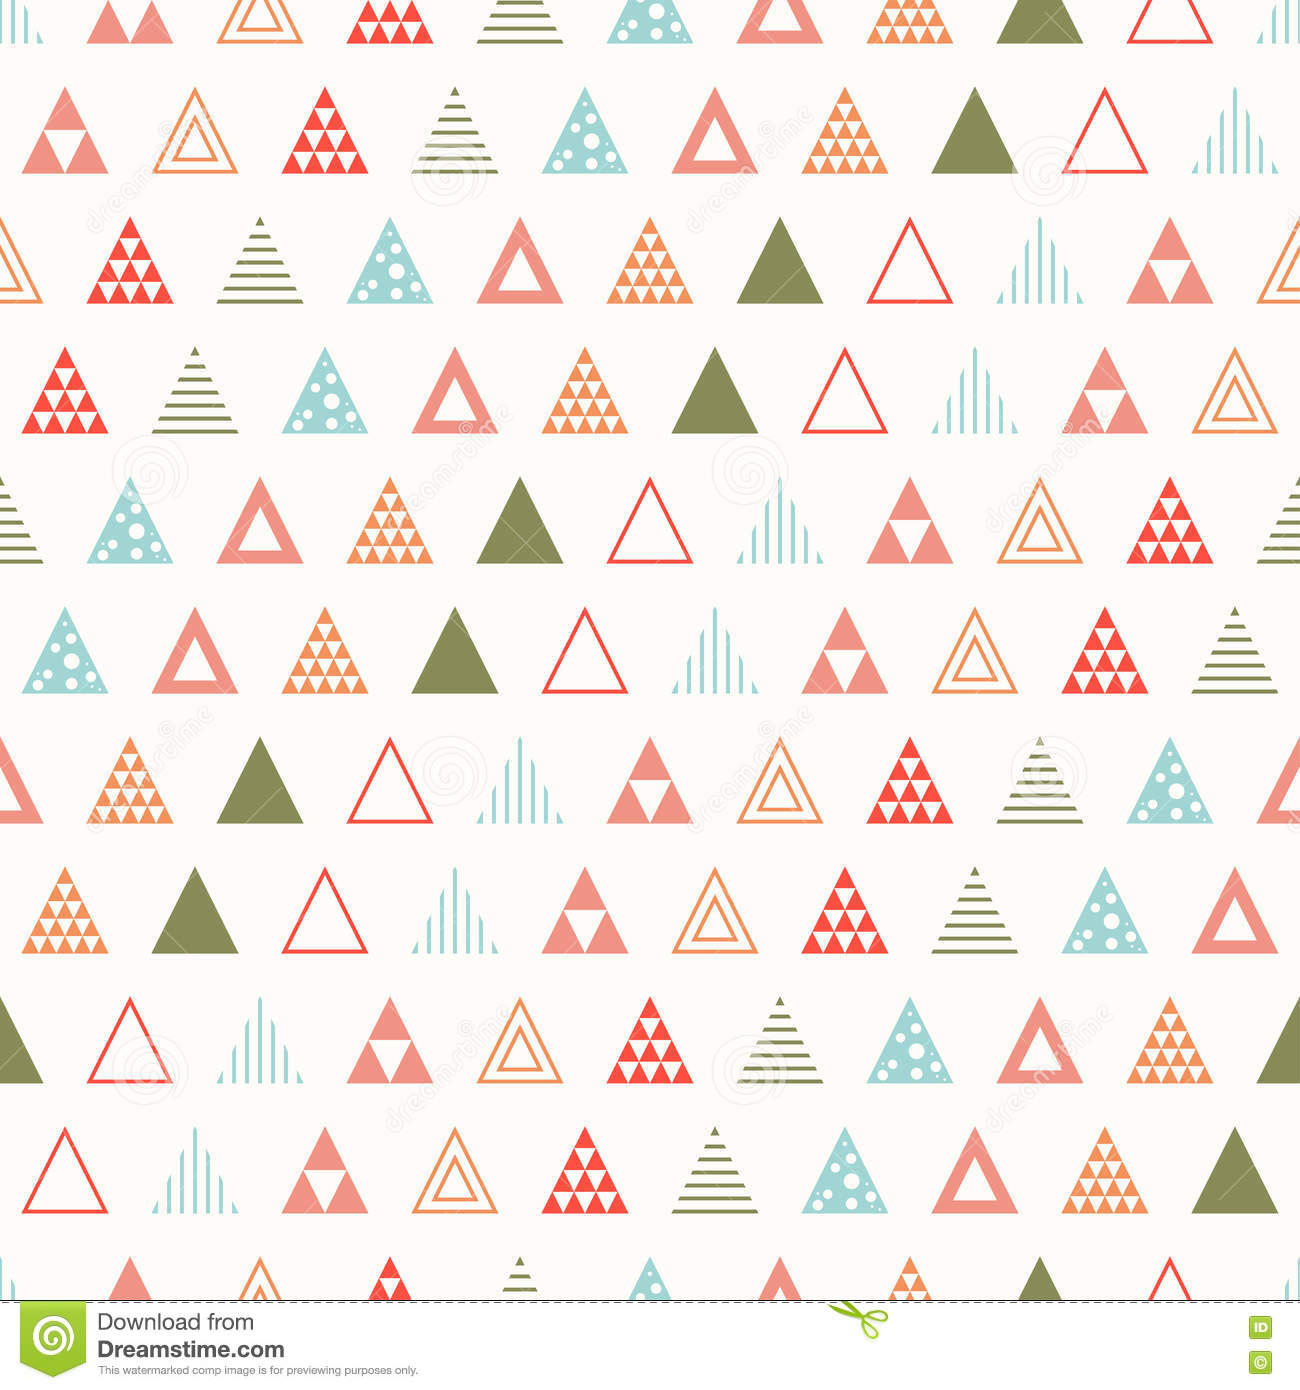 Scrapbook paper designs to print - Geometric Line Color Abstract Hipster Seamless Pattern With Triangle Wrapping Paper Scrapbook Print